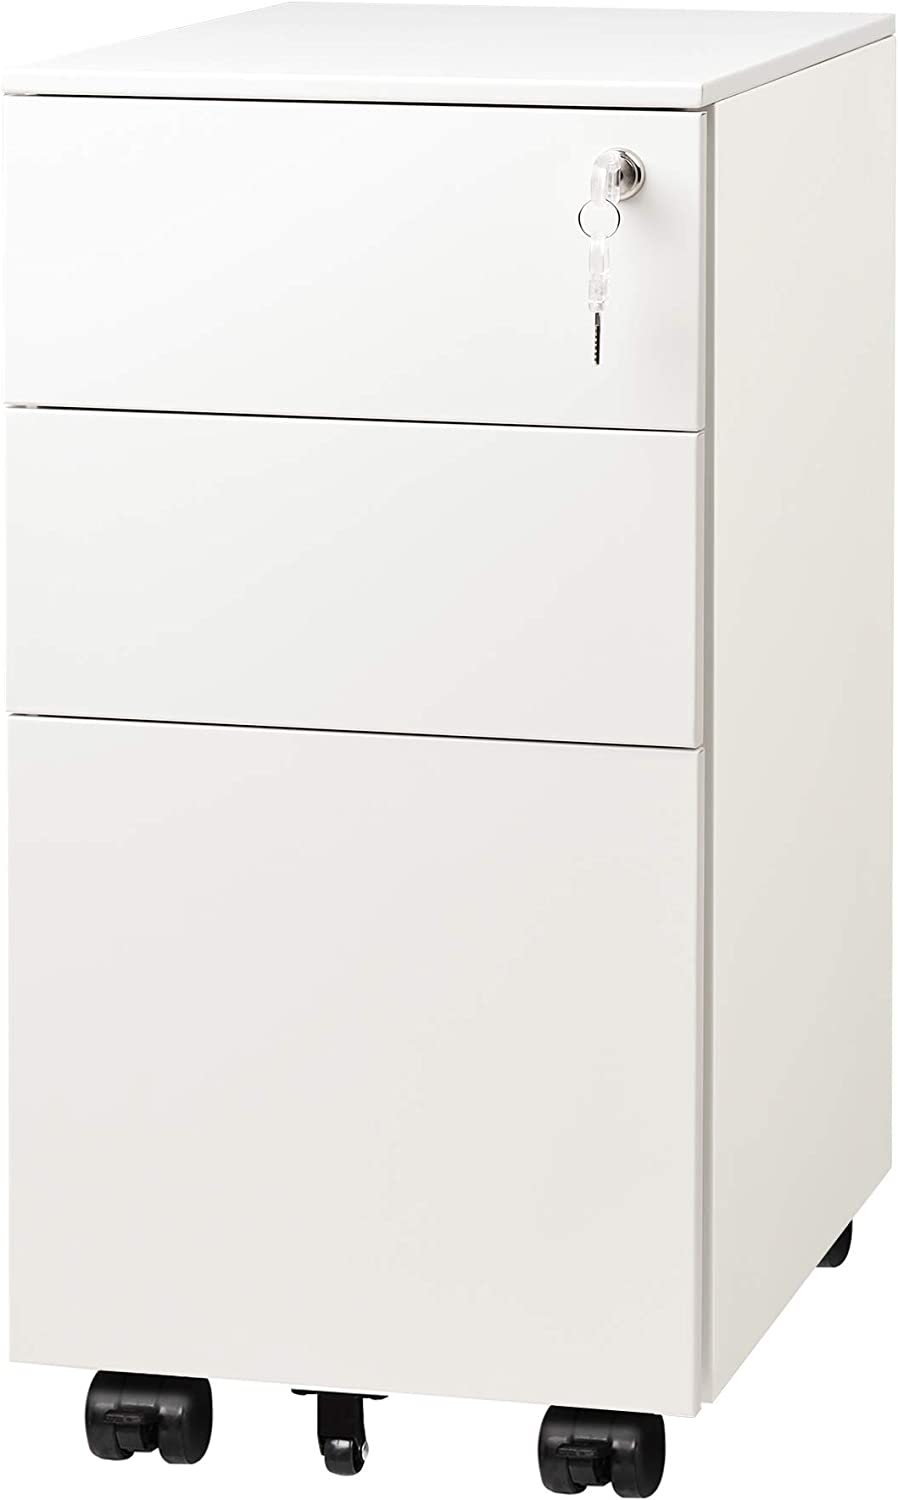 Devaise 3 Drawer Vertical File Cabinet Mobile Filing Cabinet With Interlock System For Home Office White Amazon Ca Office Products